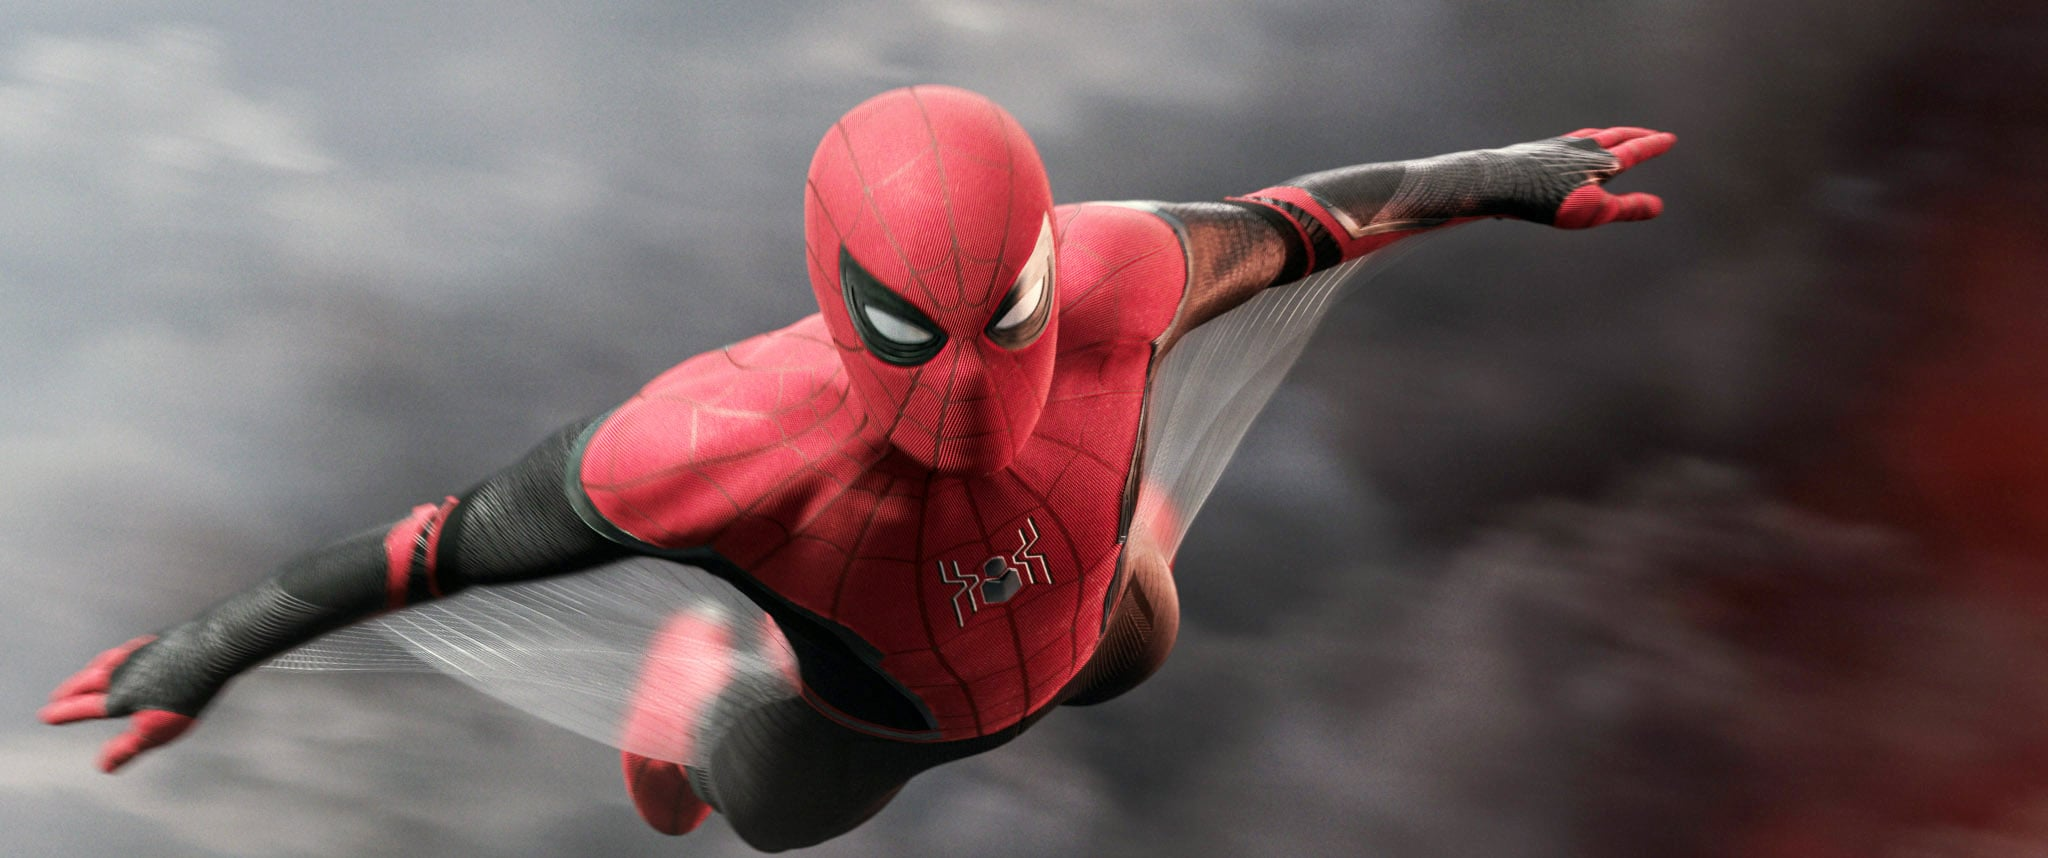 SPIDER-MAN: FAR FROM HOME, Tom Holland as Spider-Man / Peter Parker, 2019.  Columbia Pictures /  Marvel / courtesy Everett Collection